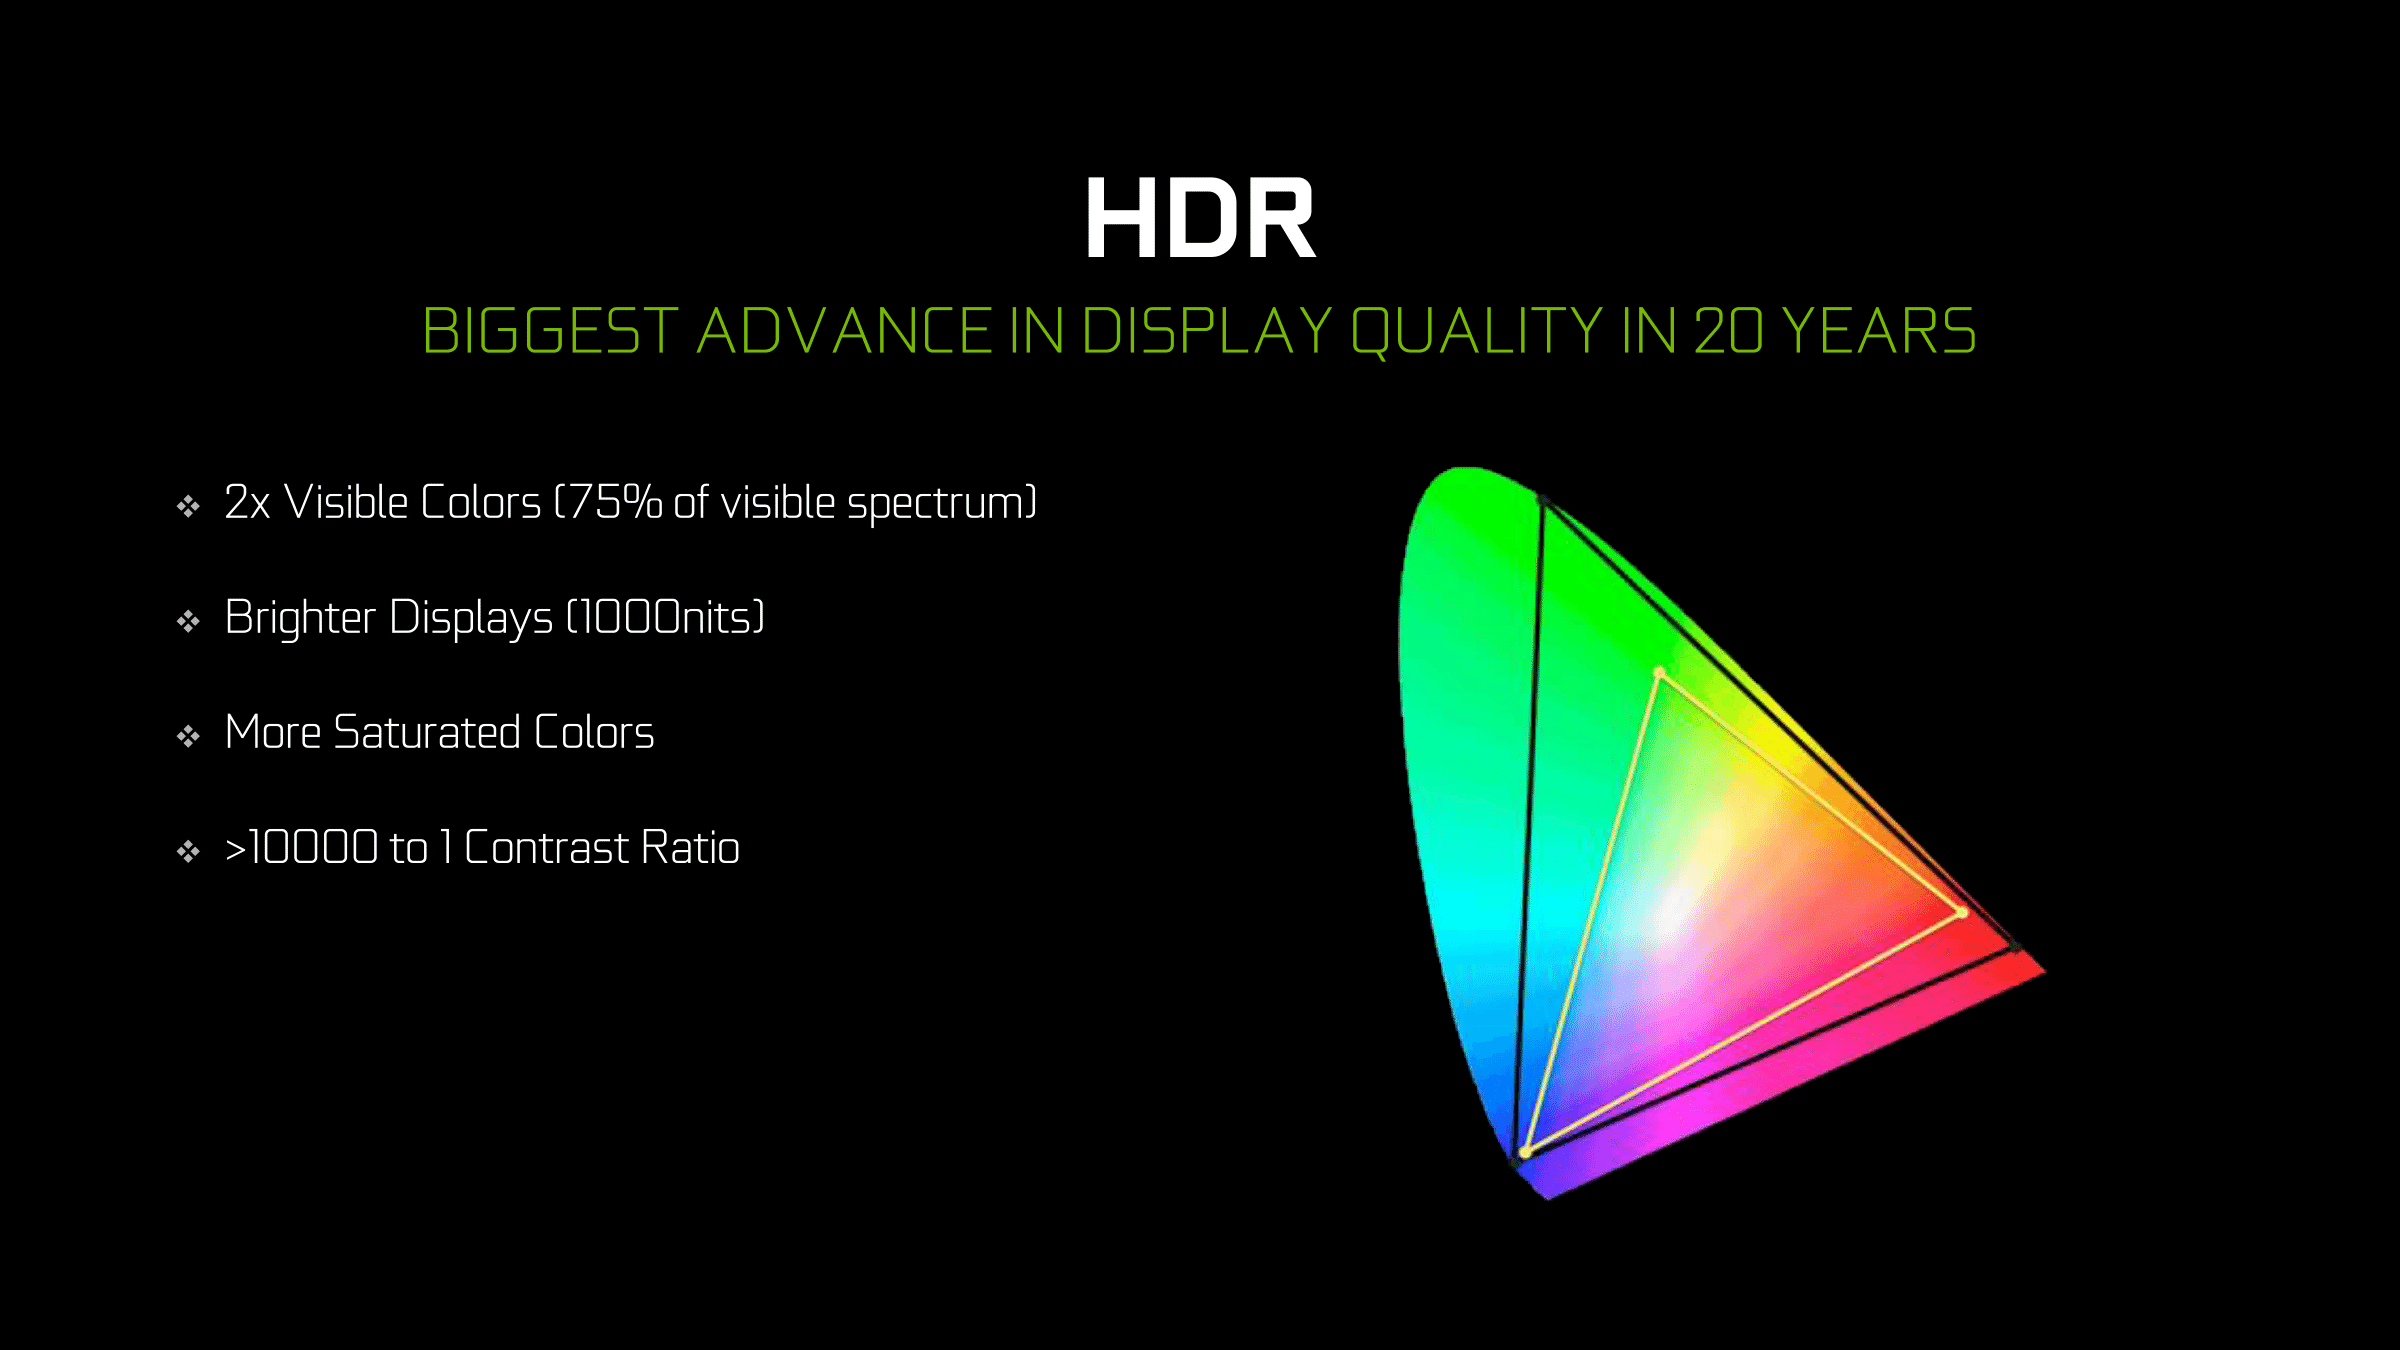 Display Matters: New Display Controller, HDR, & HEVC - The NVIDIA